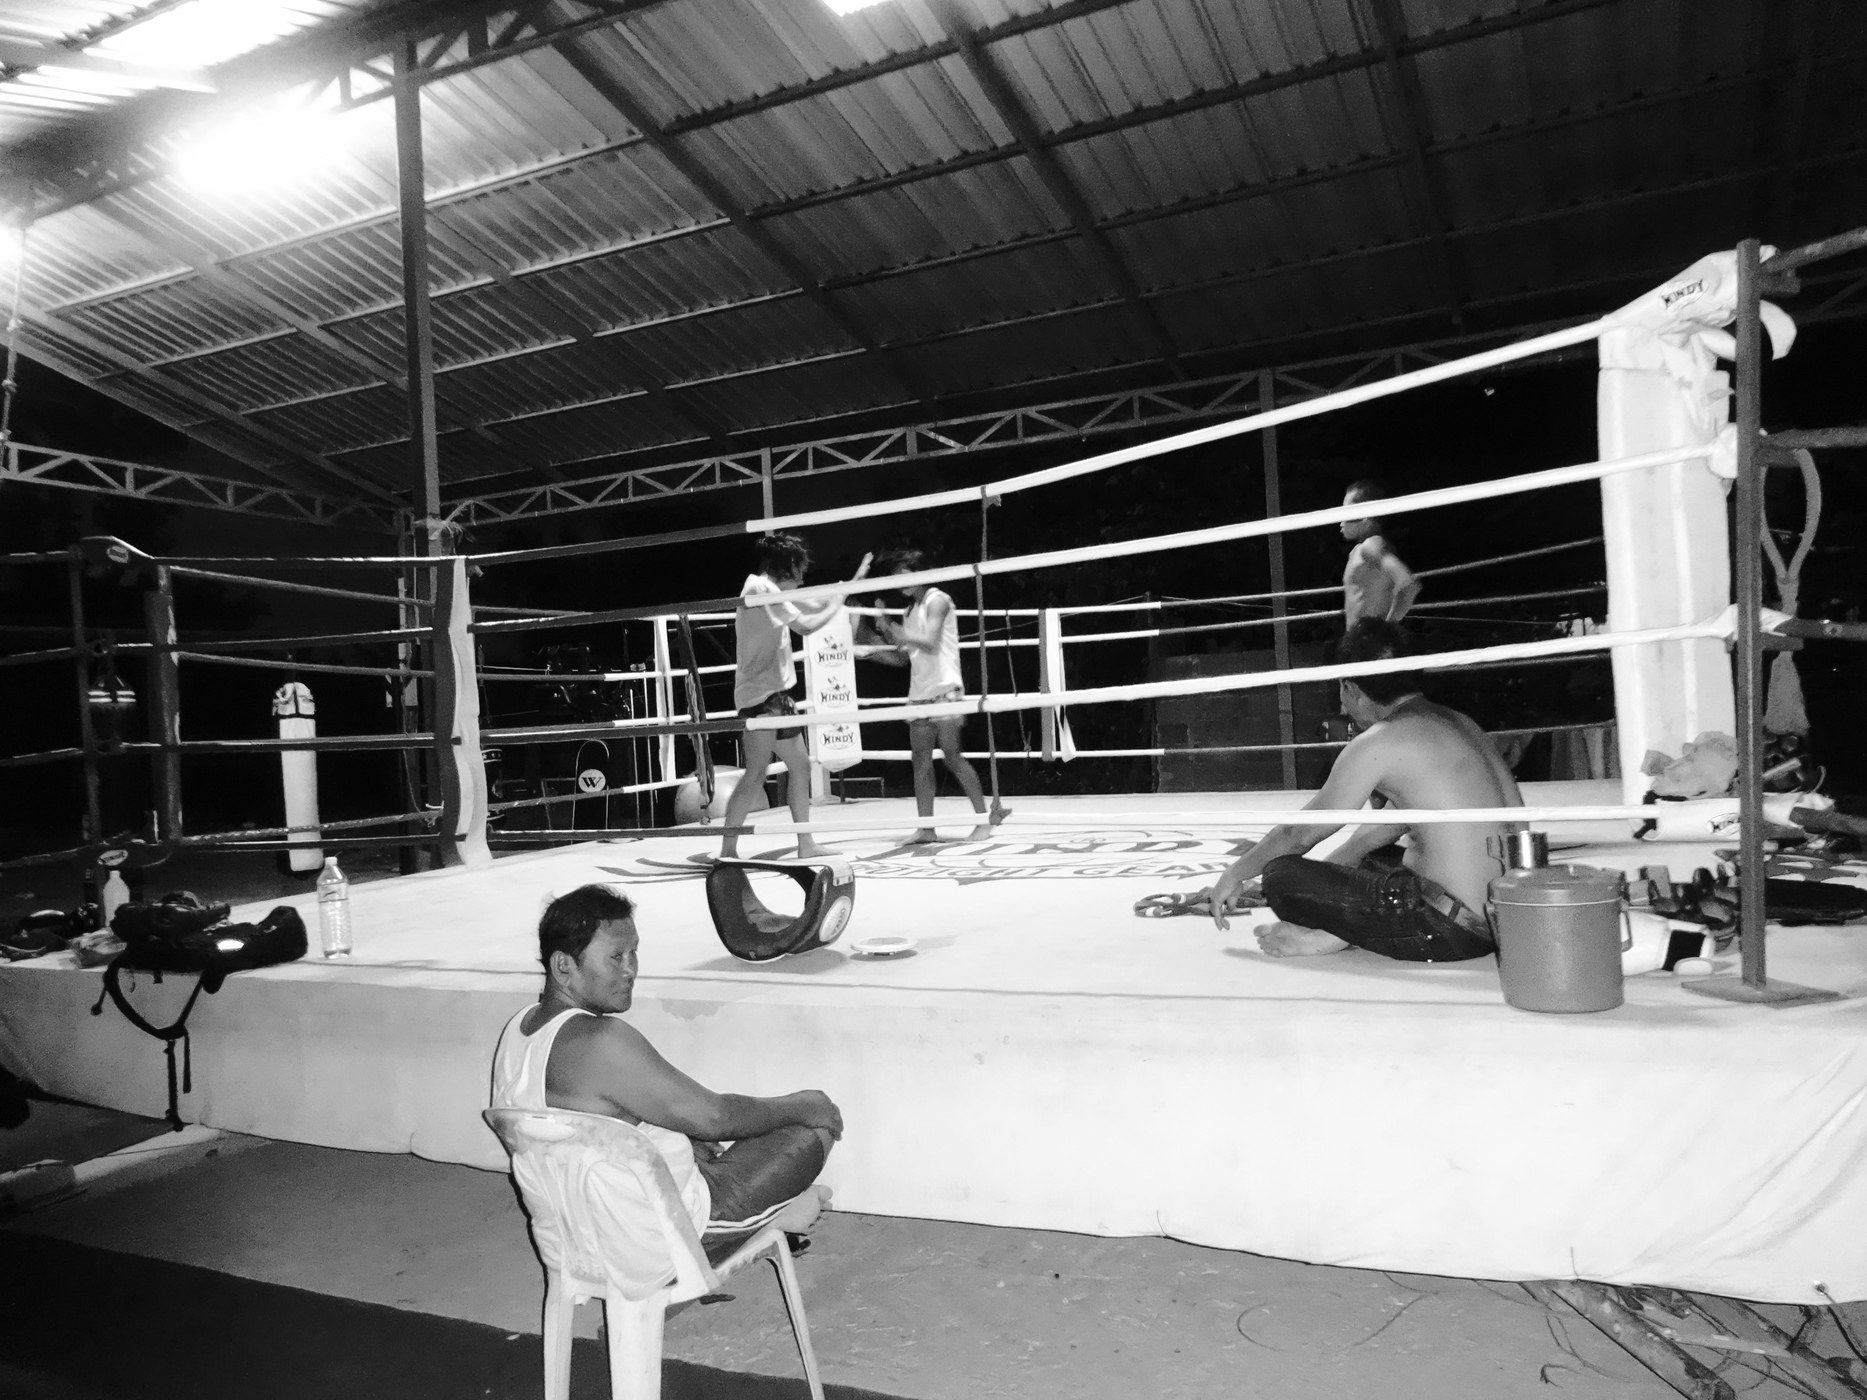 Late Night Clinching with PhetJee Jaa - O Meekhun Gym